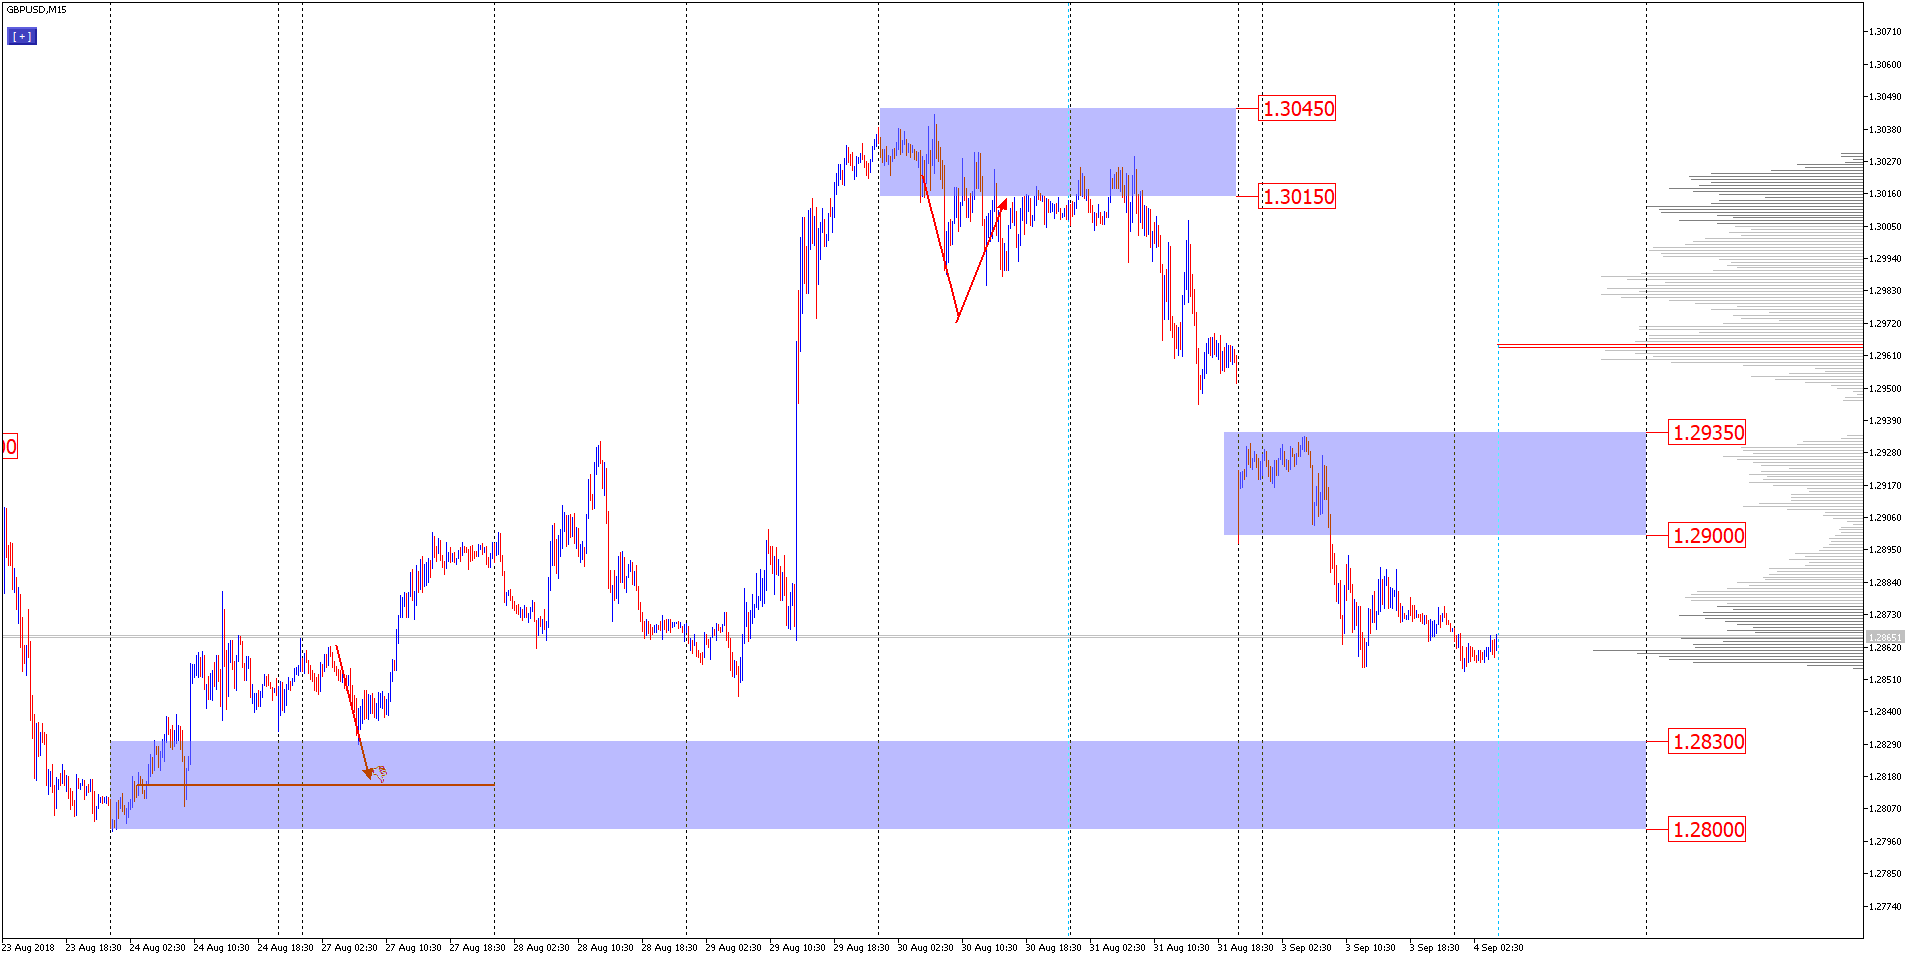 technical analysis of GBPUSD for September 4